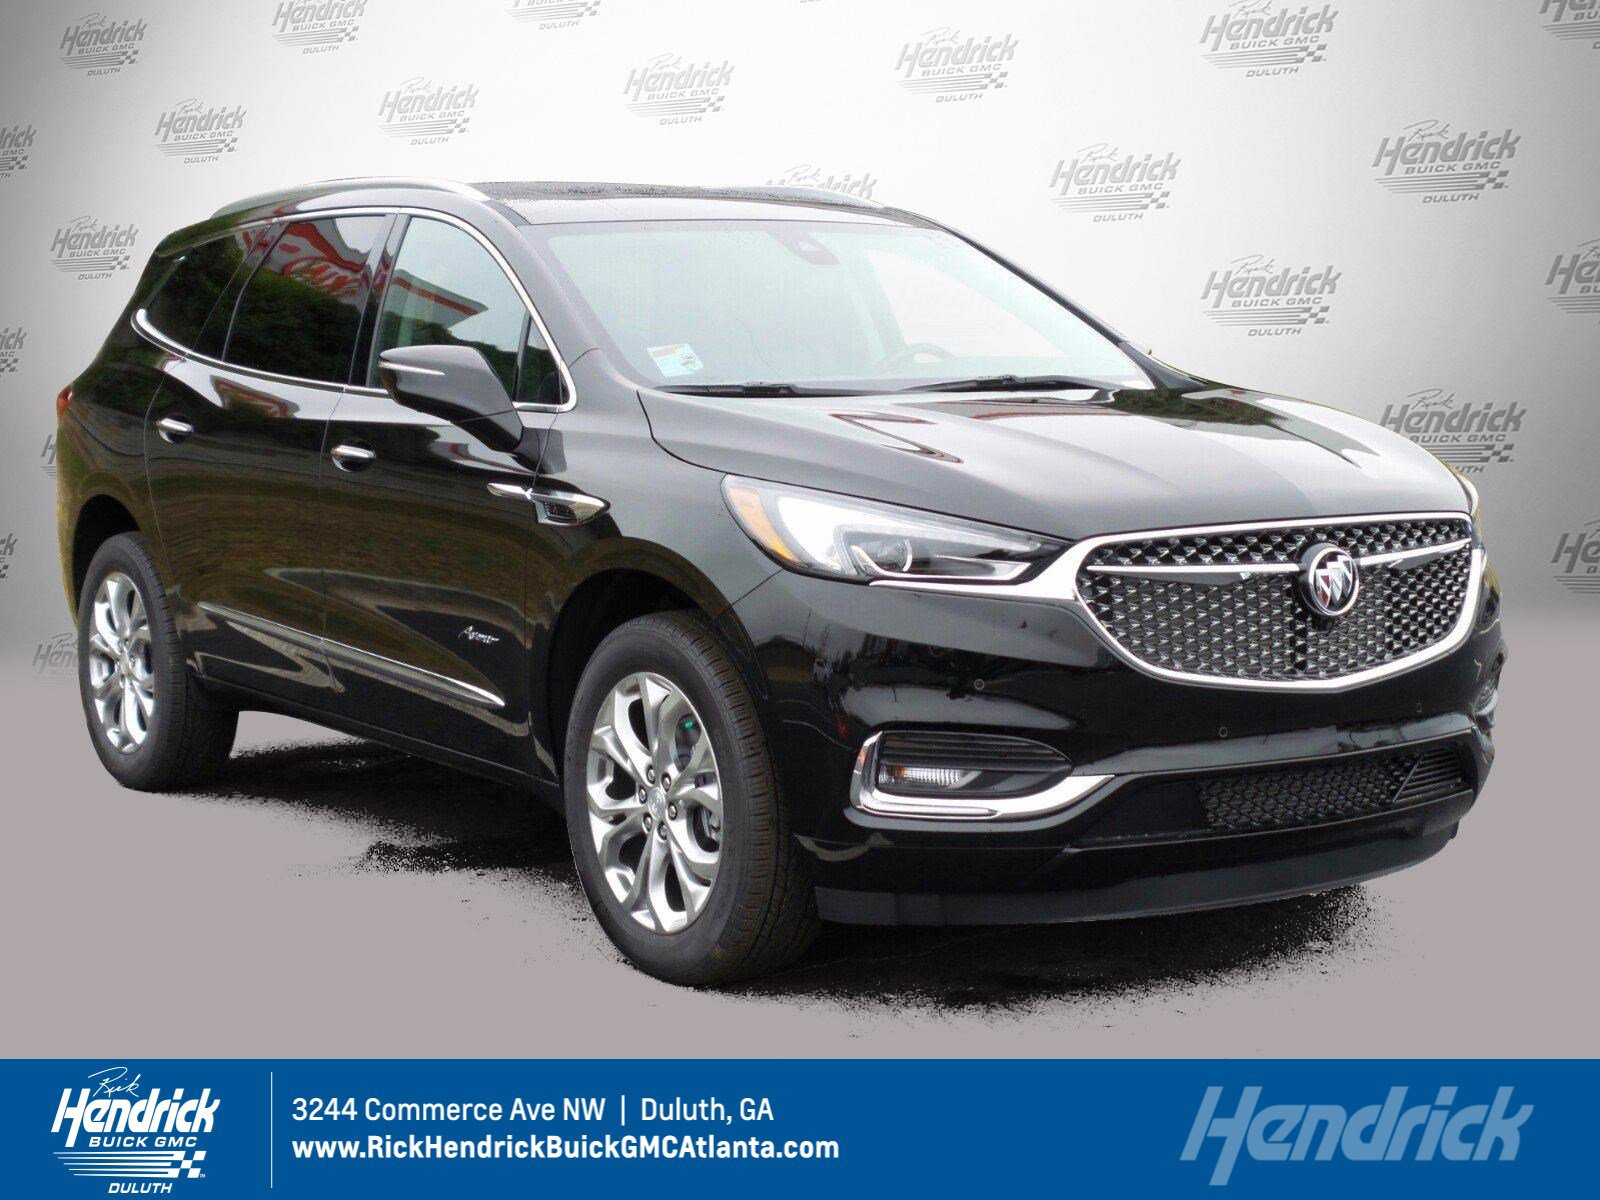 New 2021 Buick Enclave Price, Pictures, Brochure | 2021 Buick